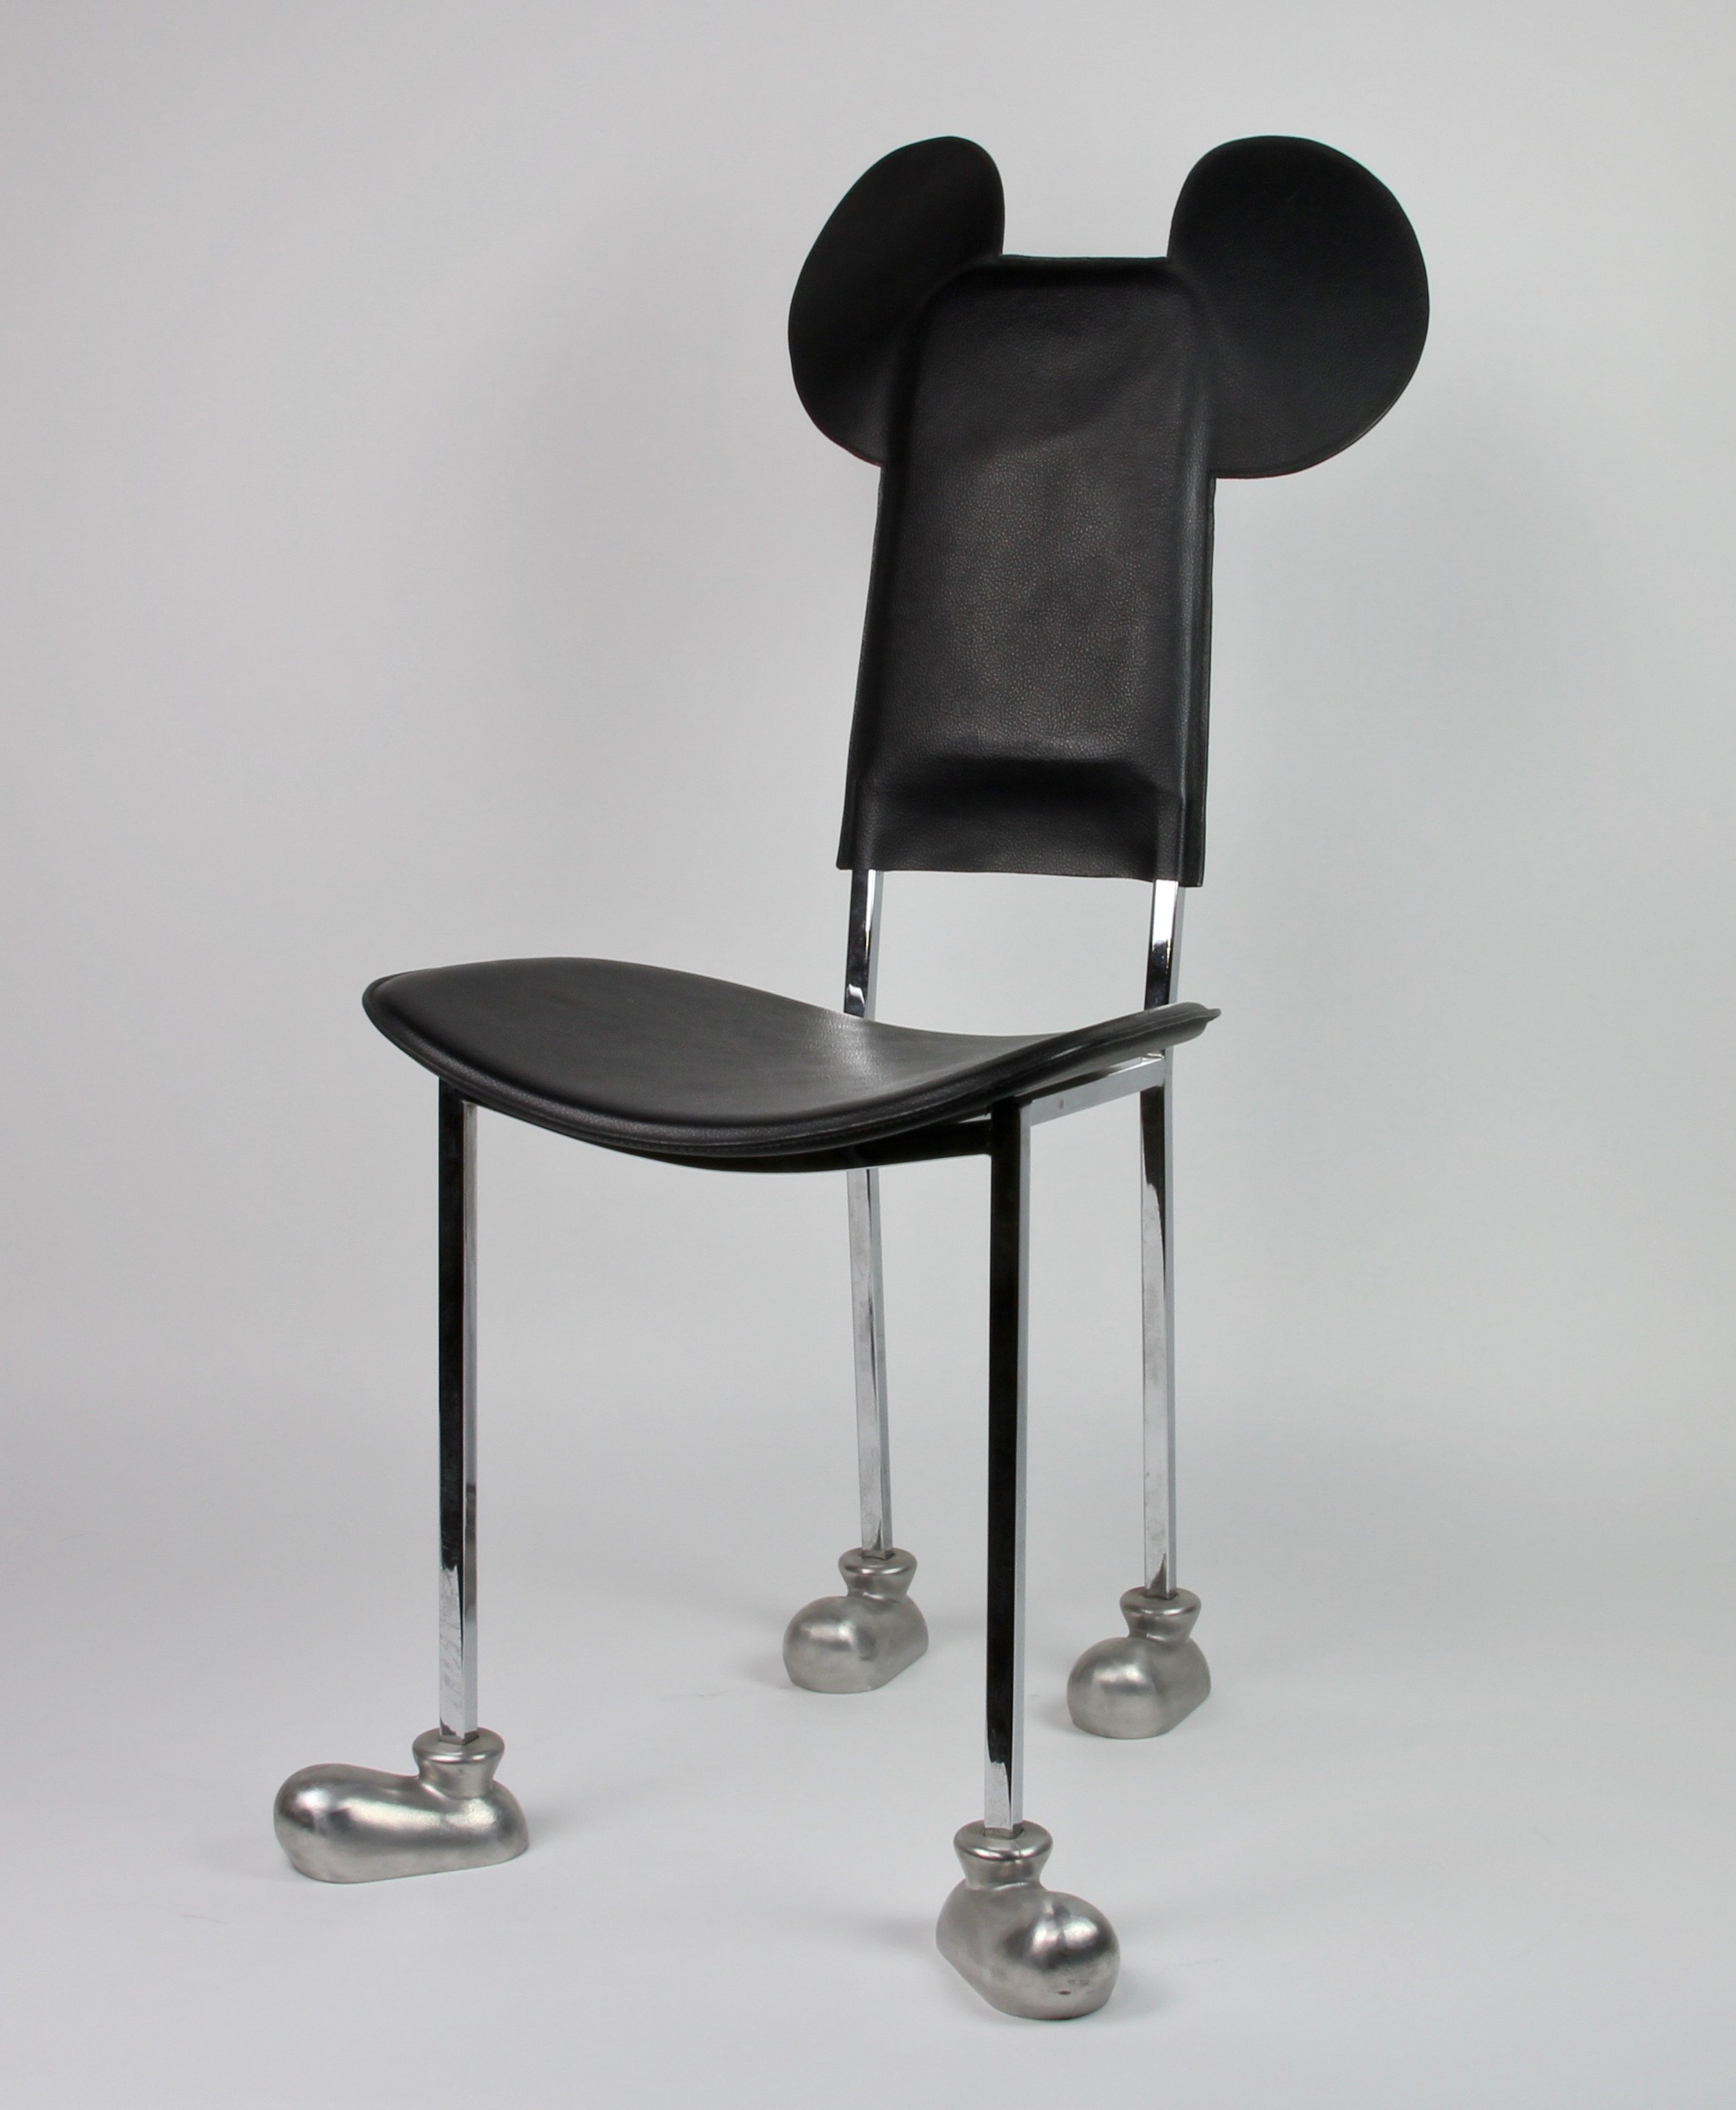 Garriris Mickey Mouse Chair By Javier Mariscal 1980s 89248